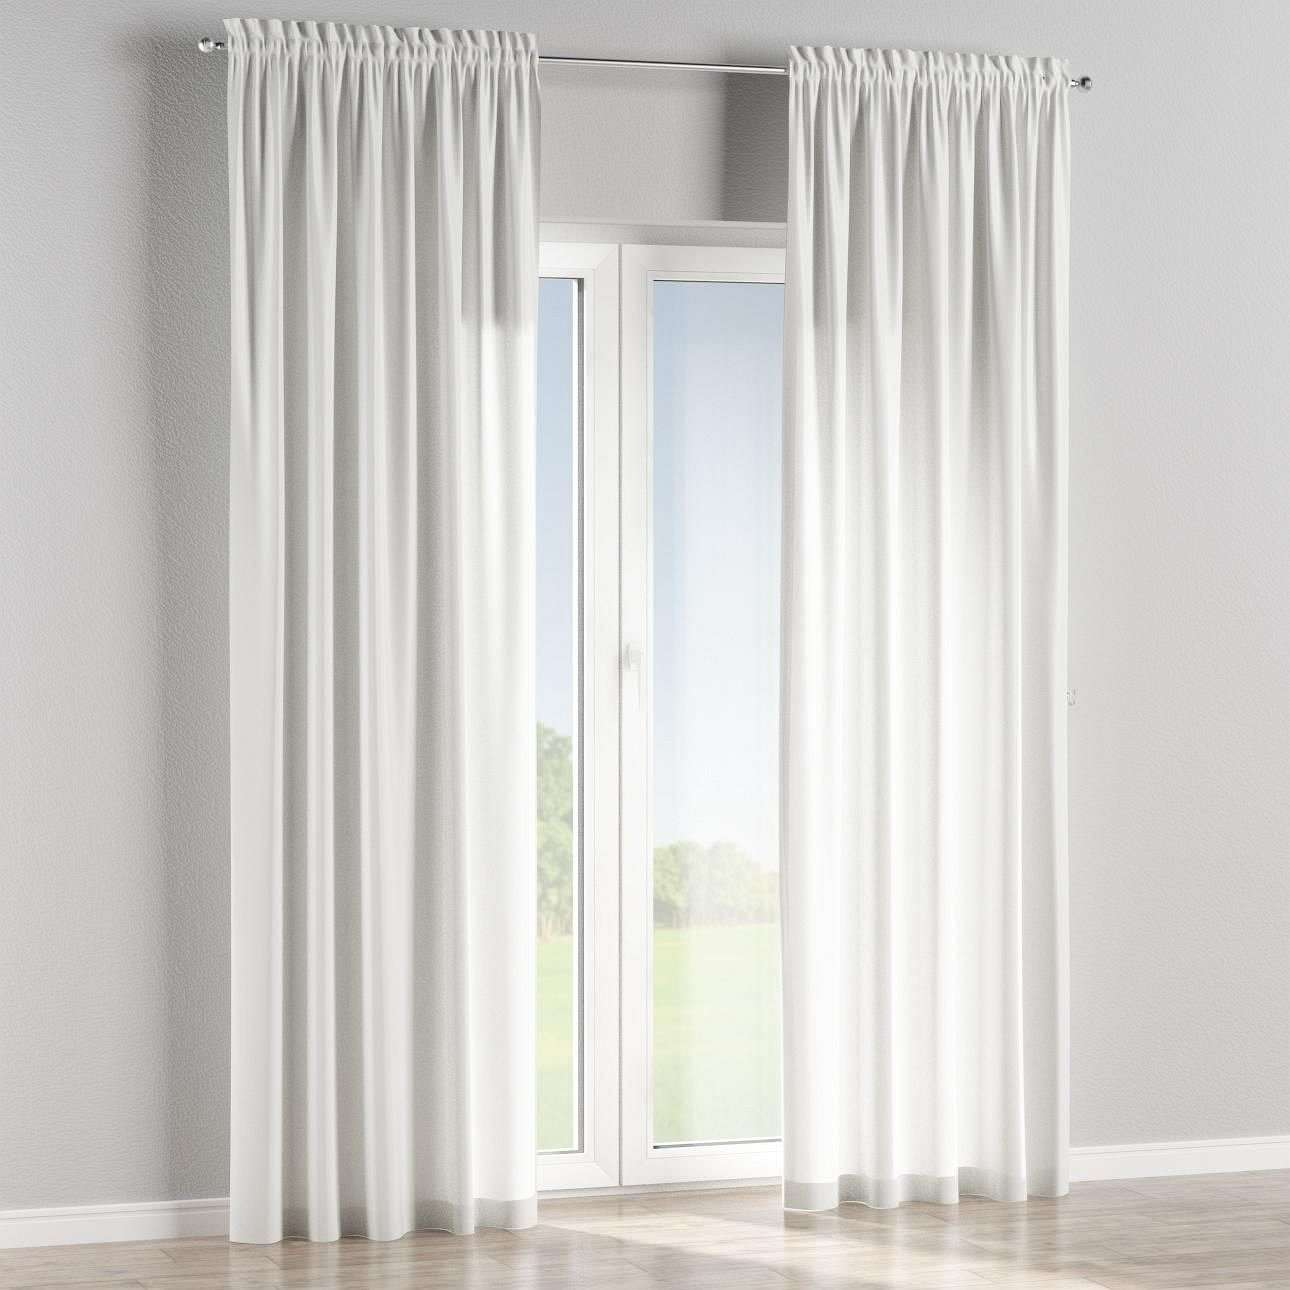 Slot and frill lined curtains in collection Amelie , fabric: 136-75